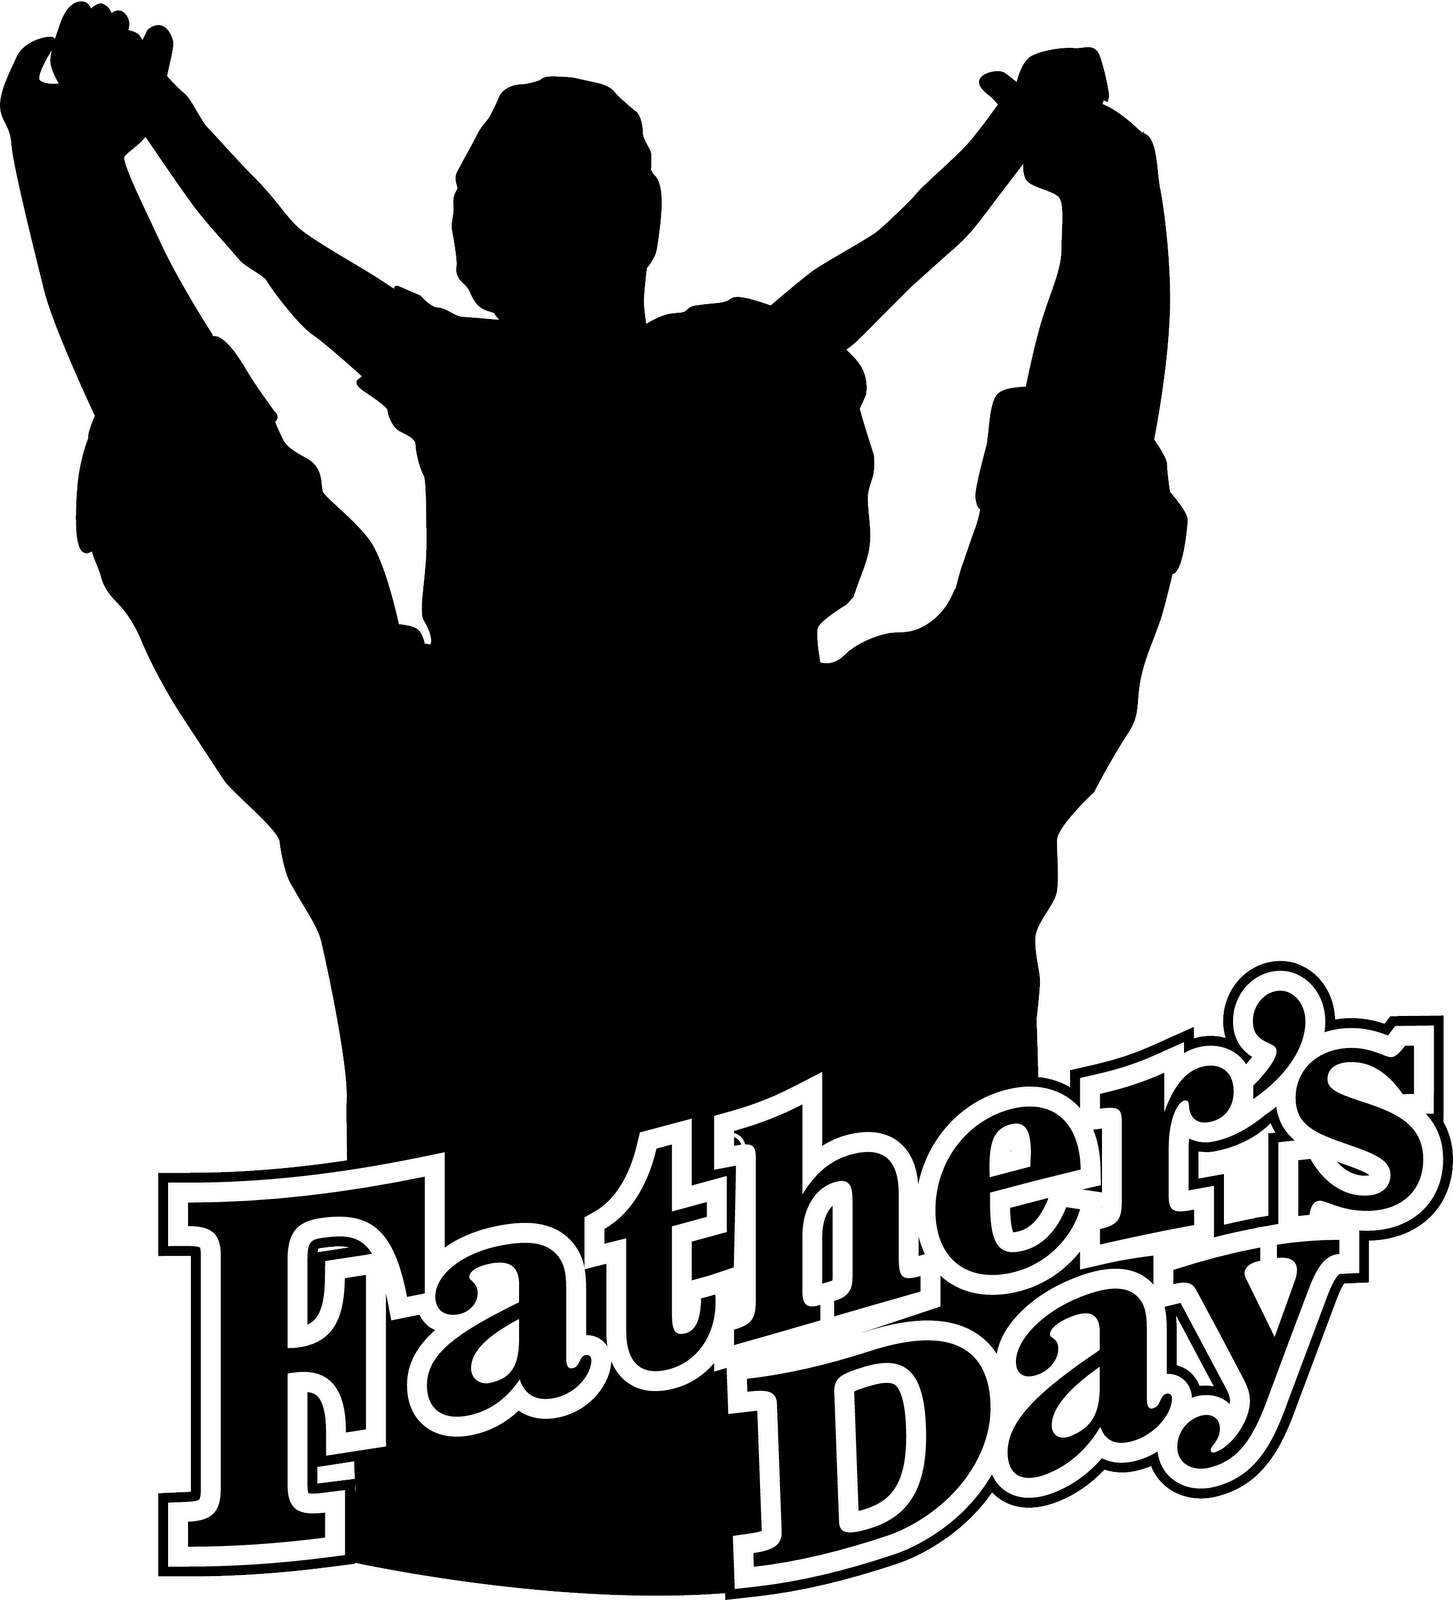 Clipart of fathers praying with their children jpg black and white stock Free Father Praying Cliparts, Download Free Clip Art, Free Clip Art ... jpg black and white stock